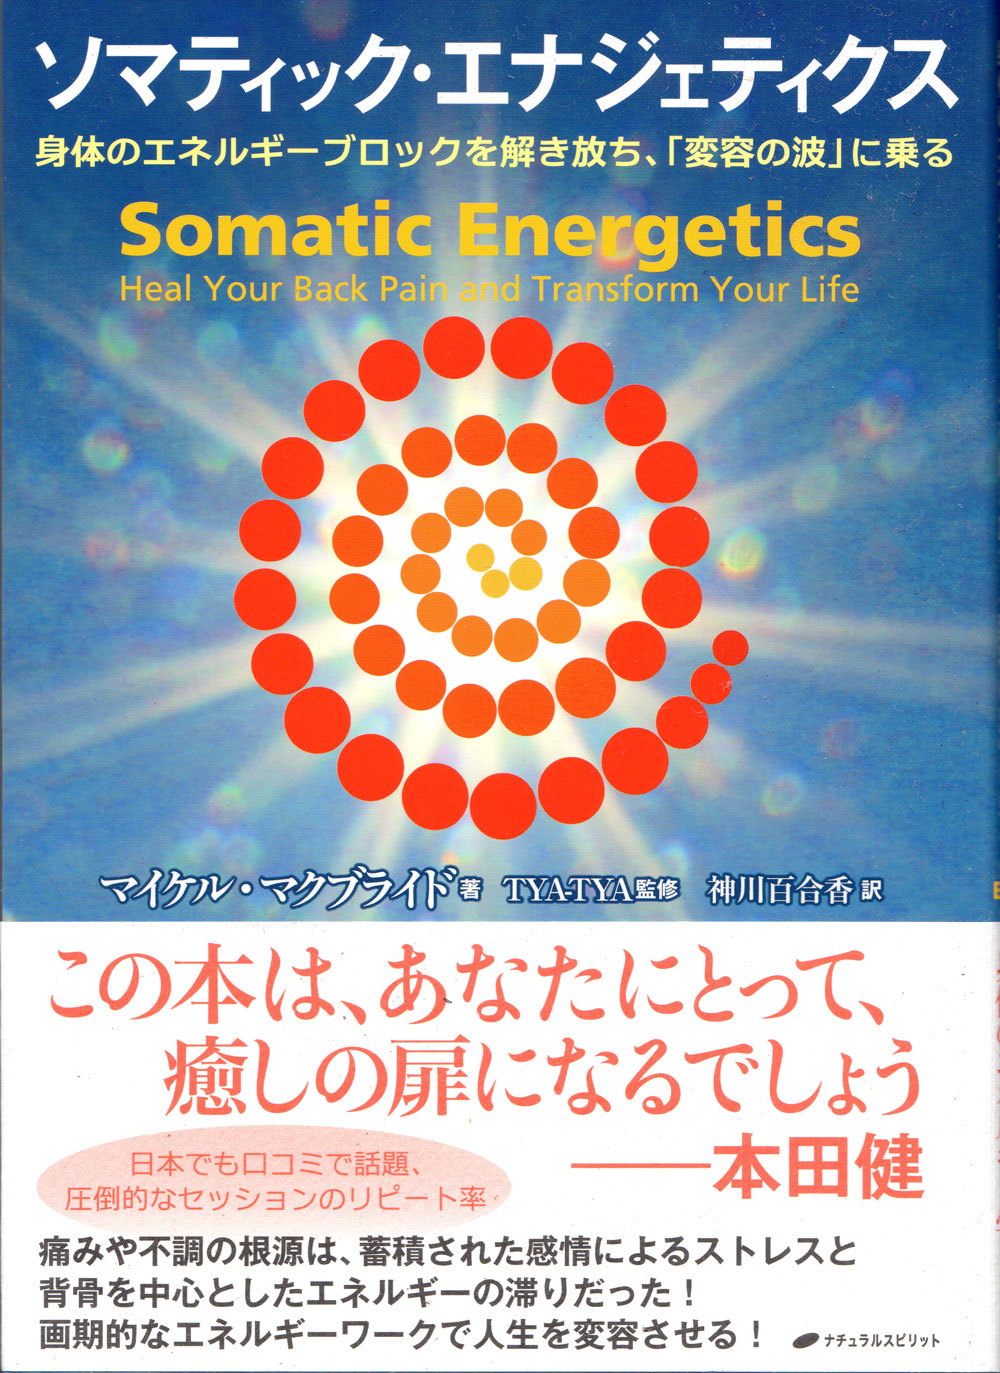 Somatic Energetics in Japanese